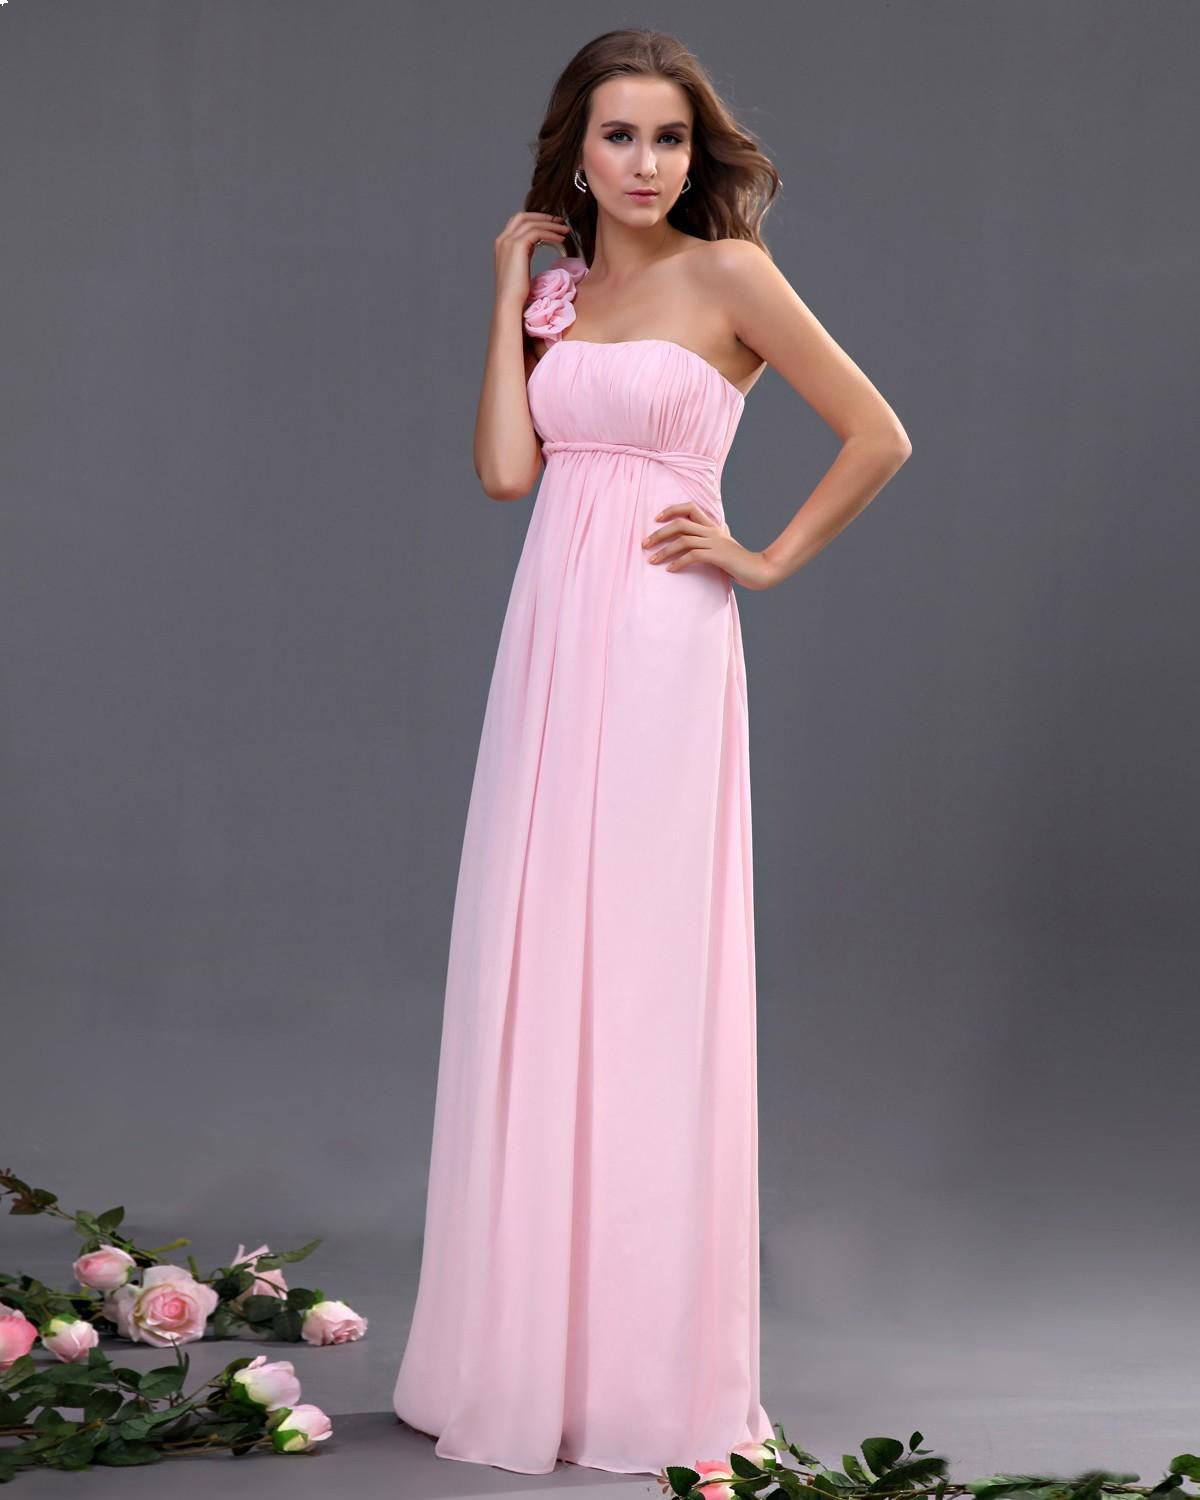 One Shoulder Chiffon Floor Length Bridesmaid Dress | Dream Wedding ...